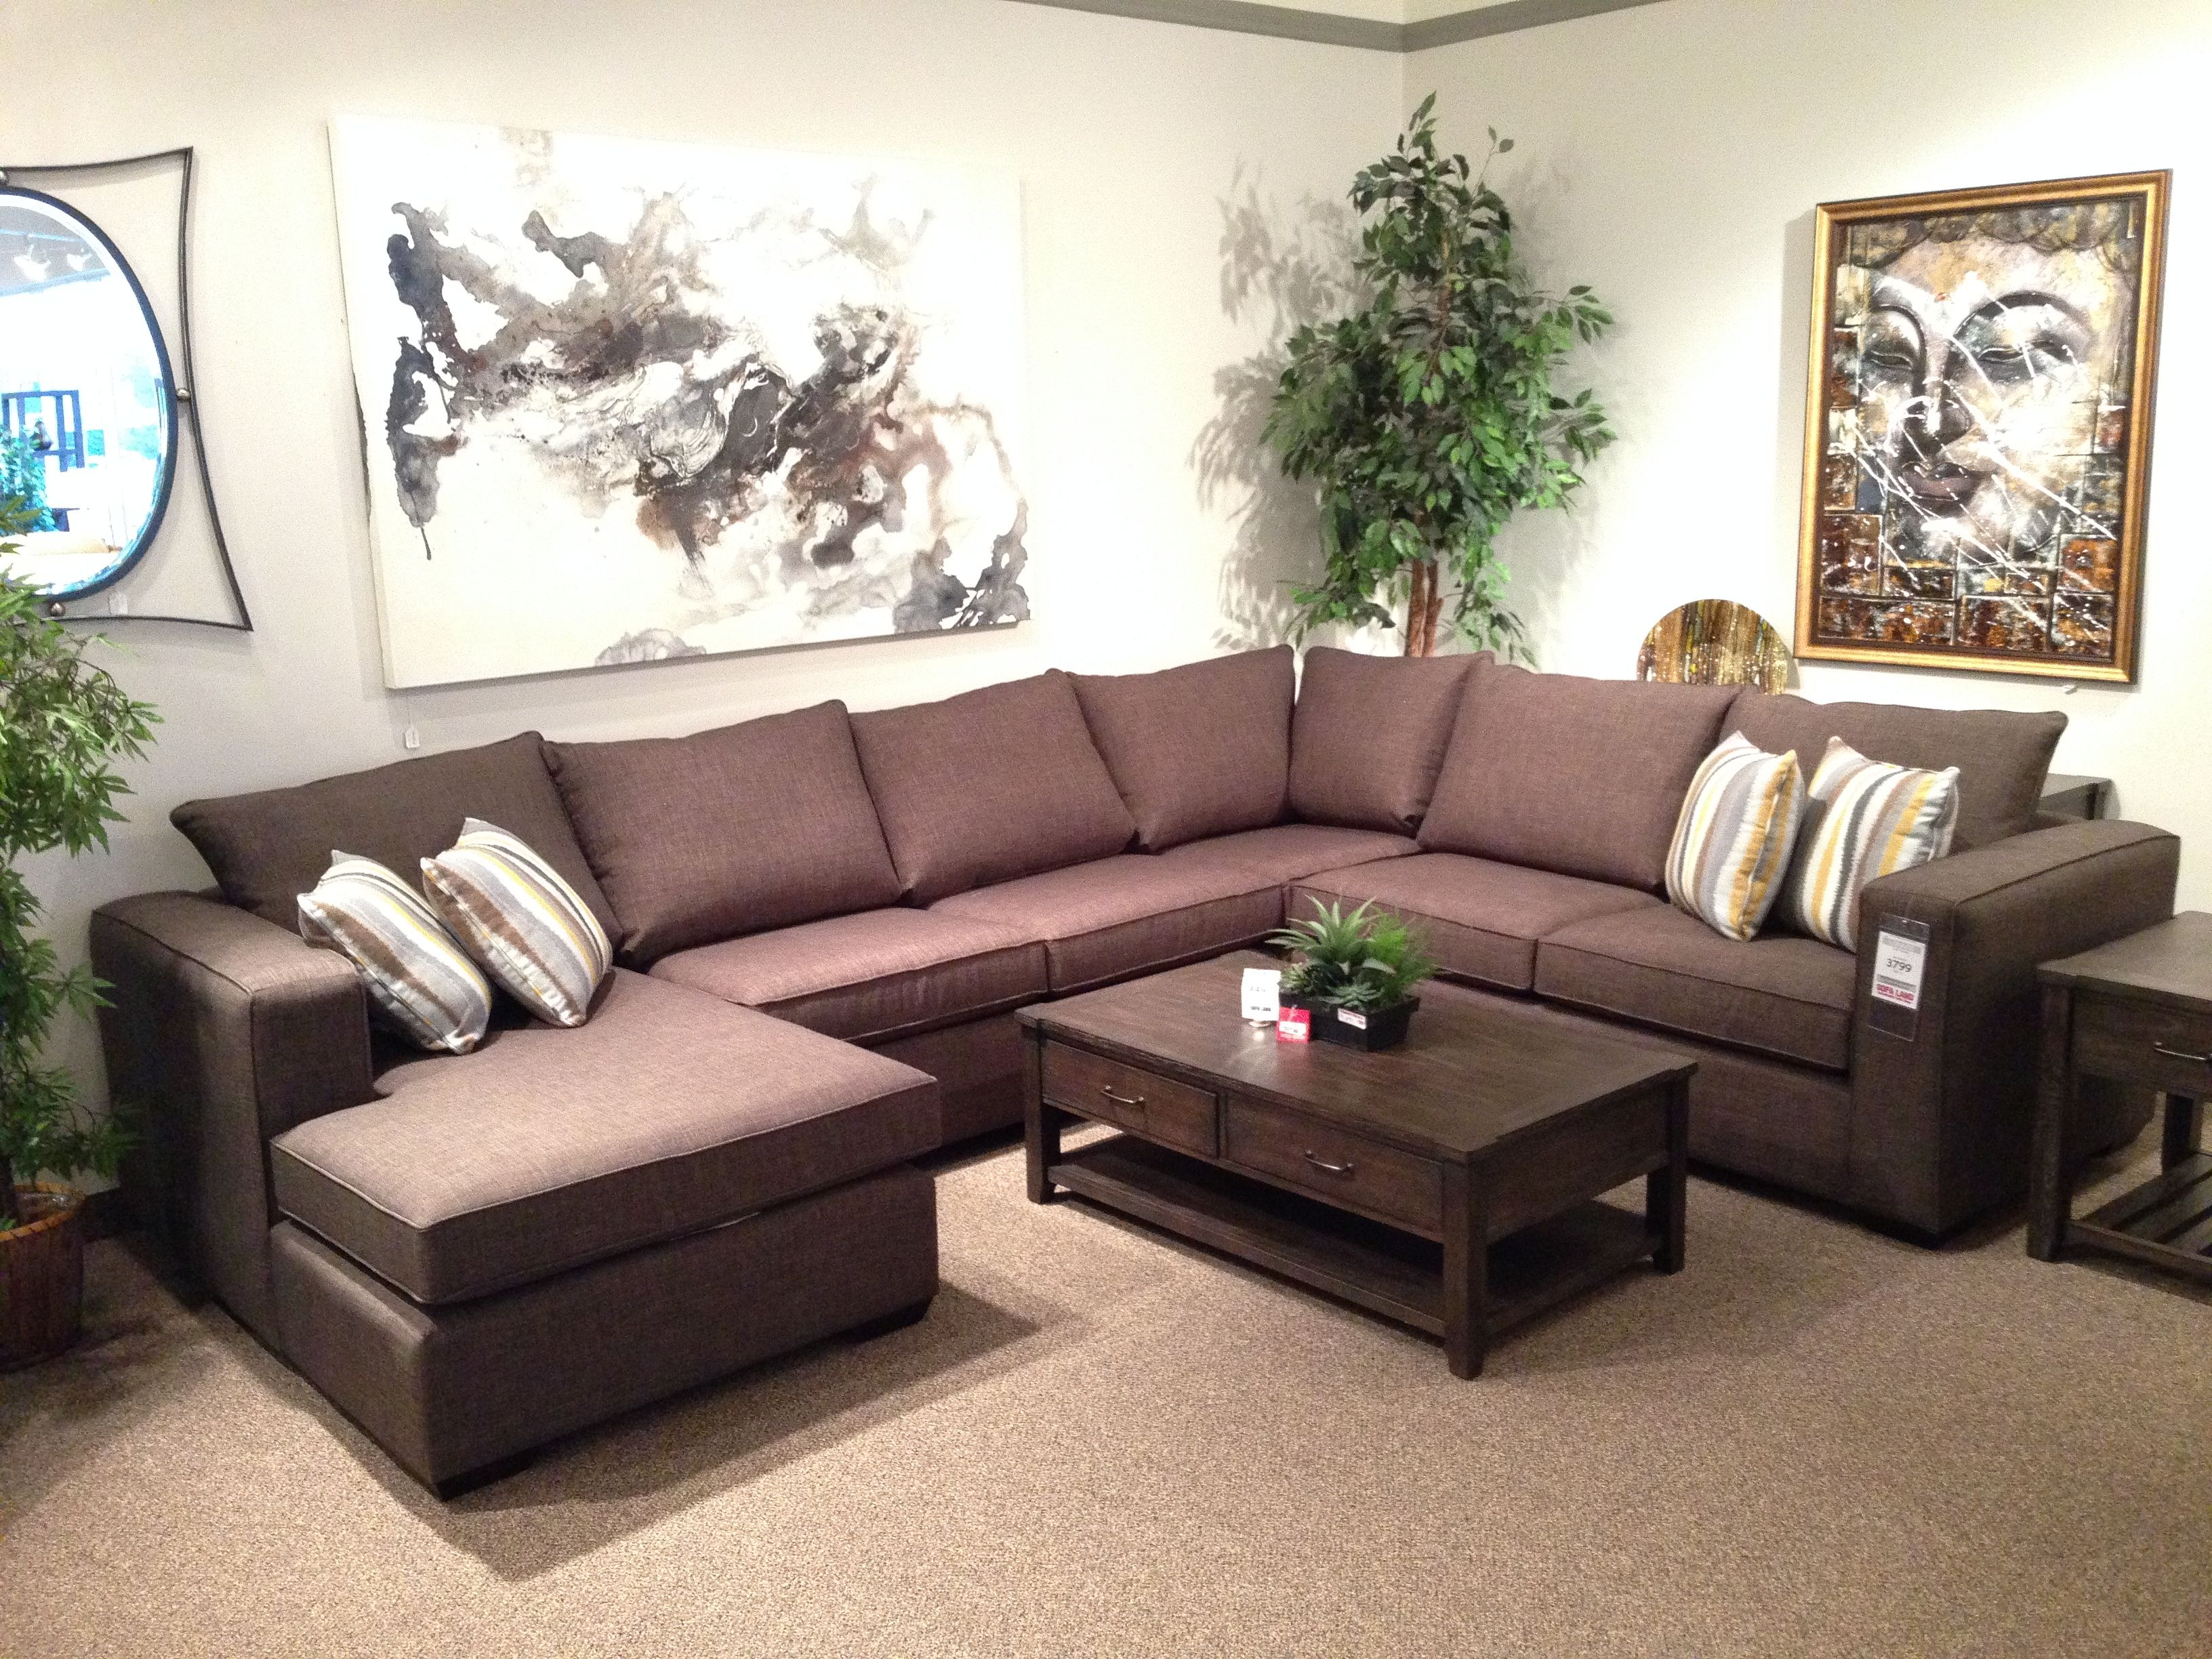 The Lonnie sectional has just arrived This piece features wide